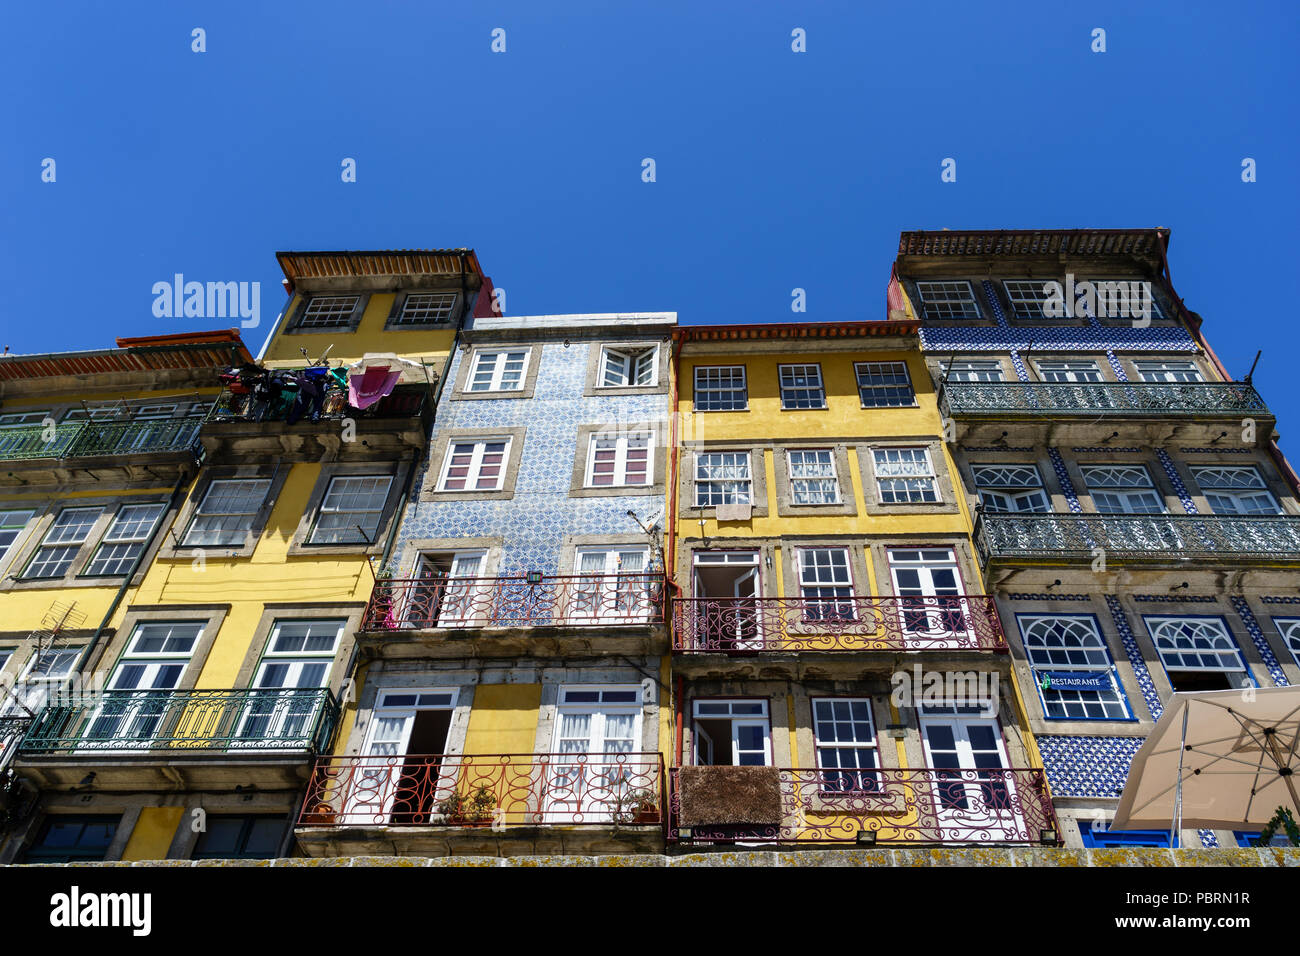 Abstract view of typical multi-story building facades in Porto Portugal showing examples of azulejos tiles - Stock Image